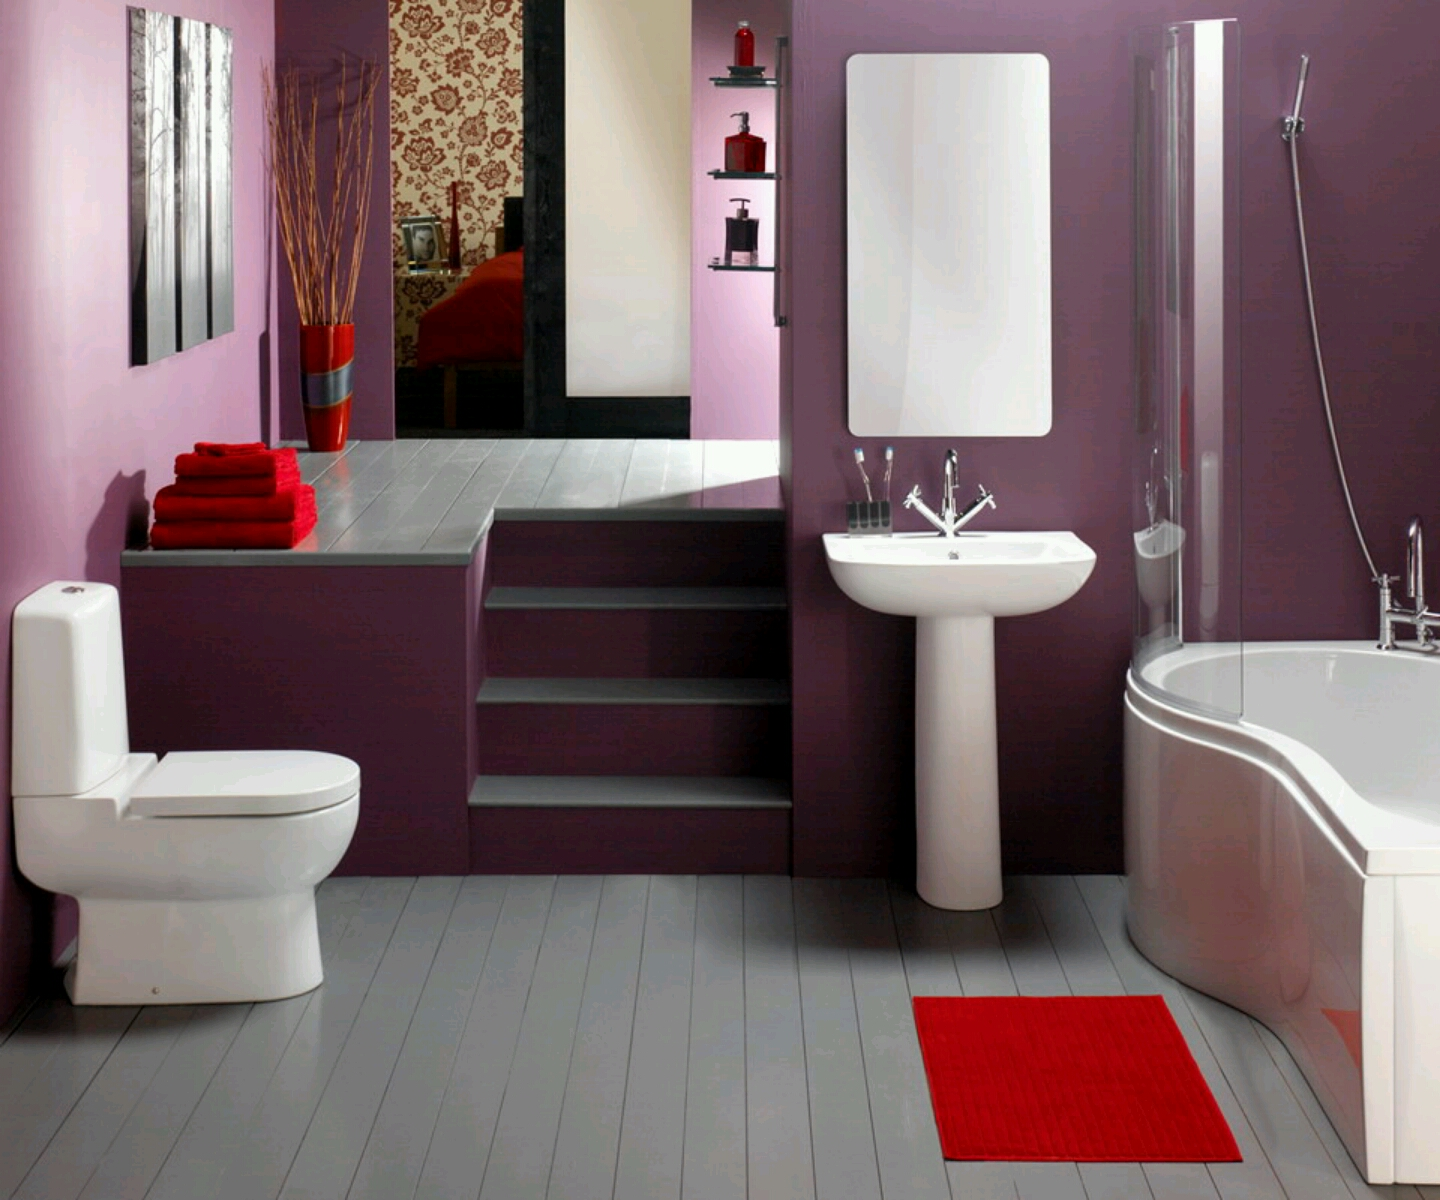 New Home Designs Latest Modern Homes Modern Bathrooms: New Home Designs Latest.: Luxury Modern Bathrooms Designs